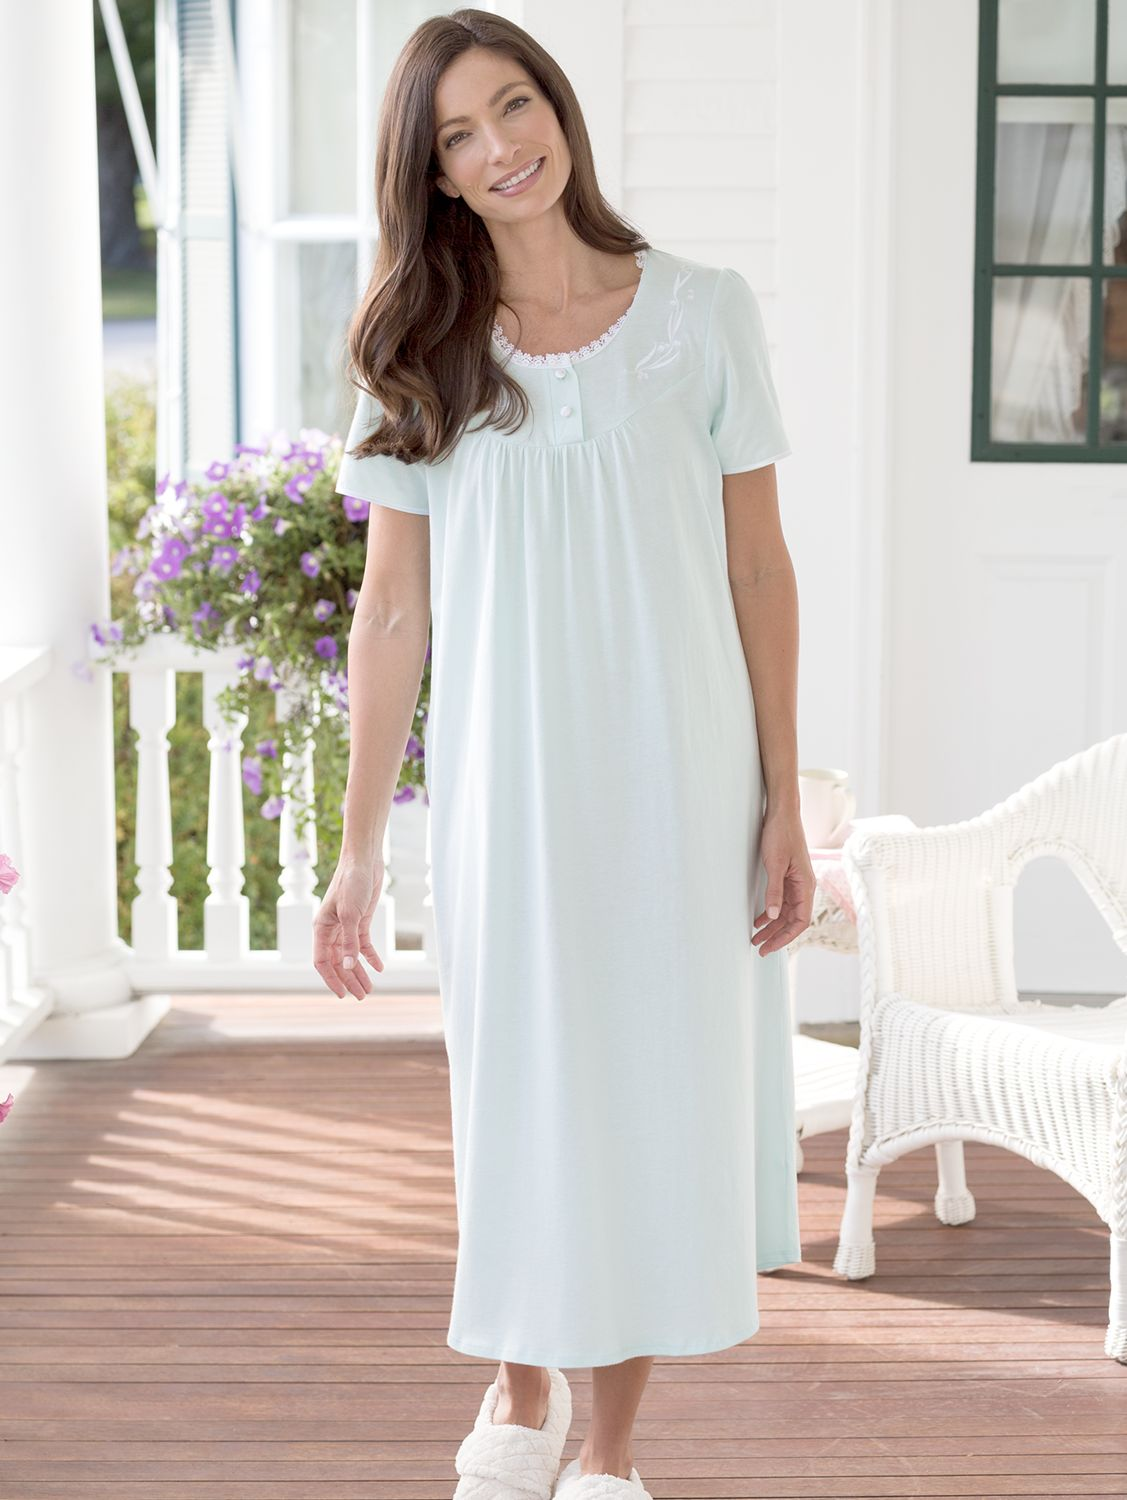 276802aa036 Cotton Knit Nightgown with Lace and Satin Trim